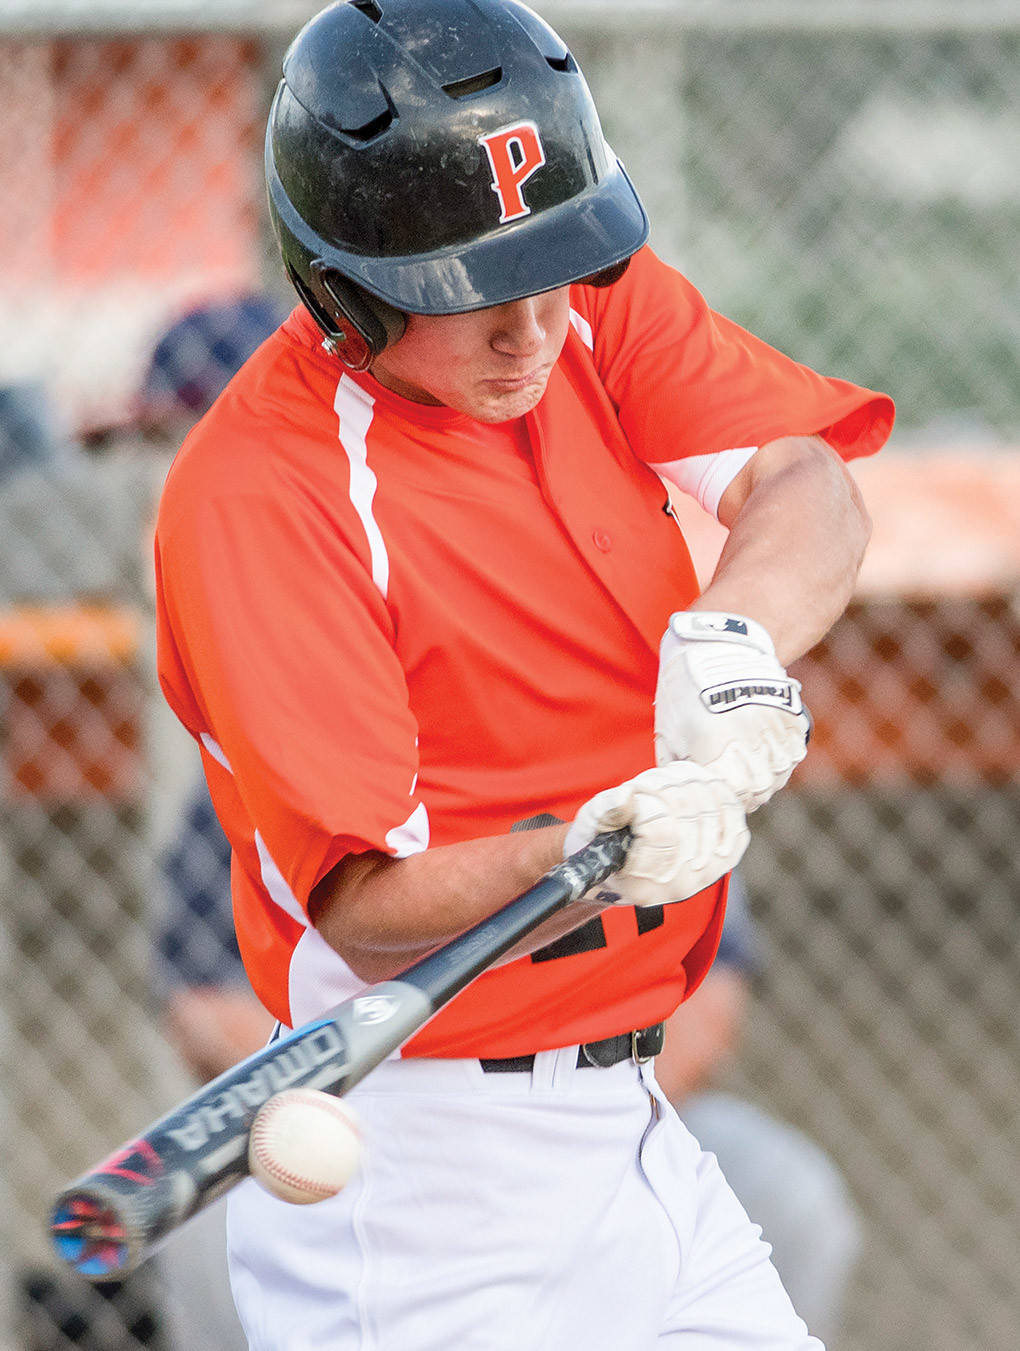 Powell Pioneer Garrett Stutzman smacks a hit Friday night against Casper at Ed Lynn Memorial Field. Casper won the game 16-3 in seven innings.